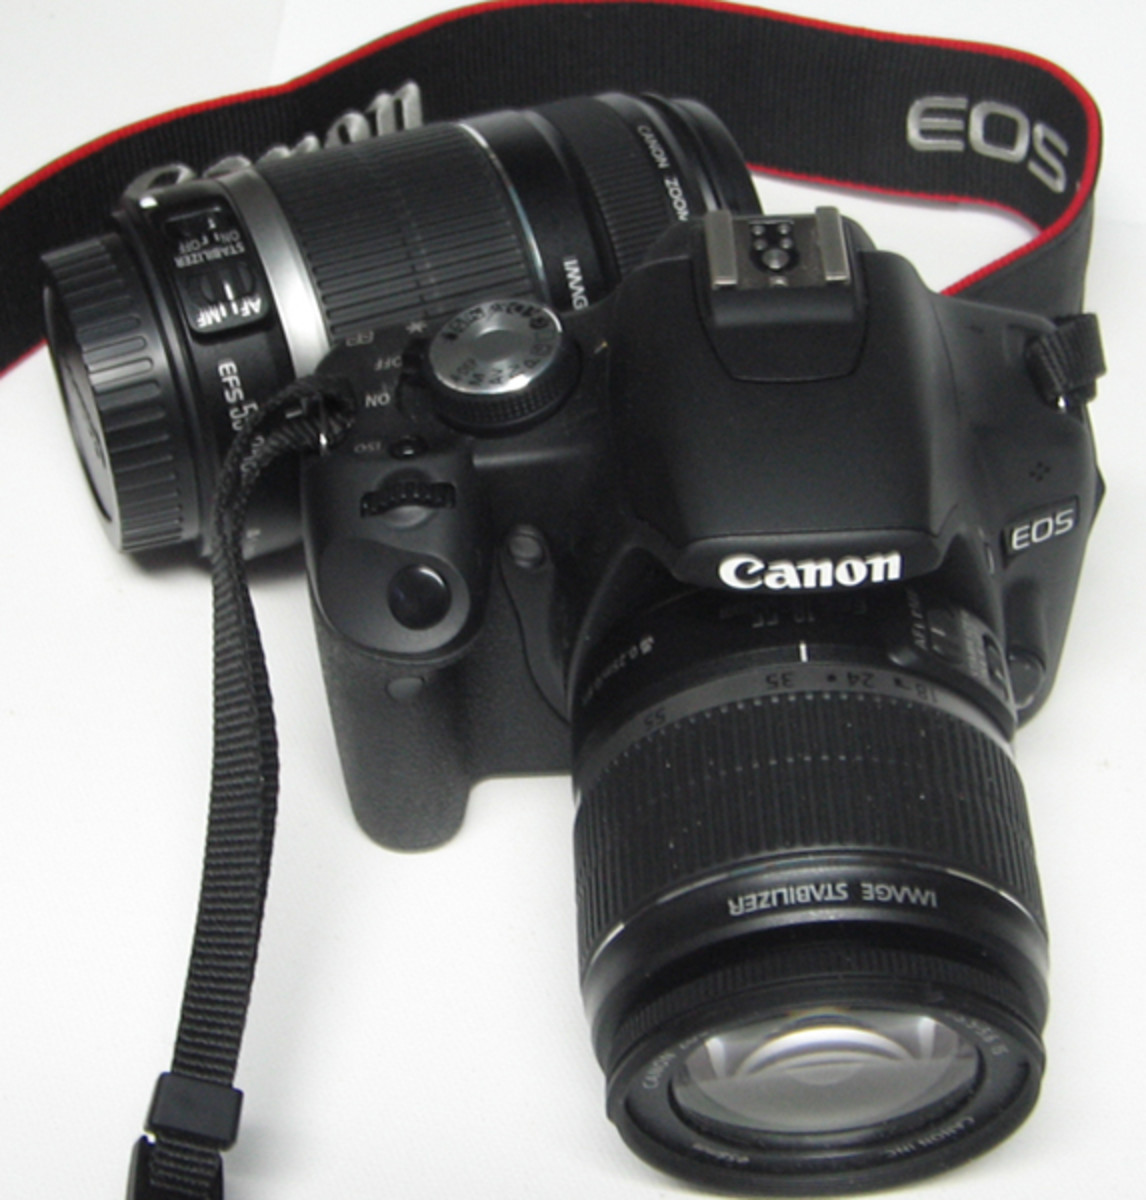 Digital Photography | Canon DSLR 500D Camera ds126231